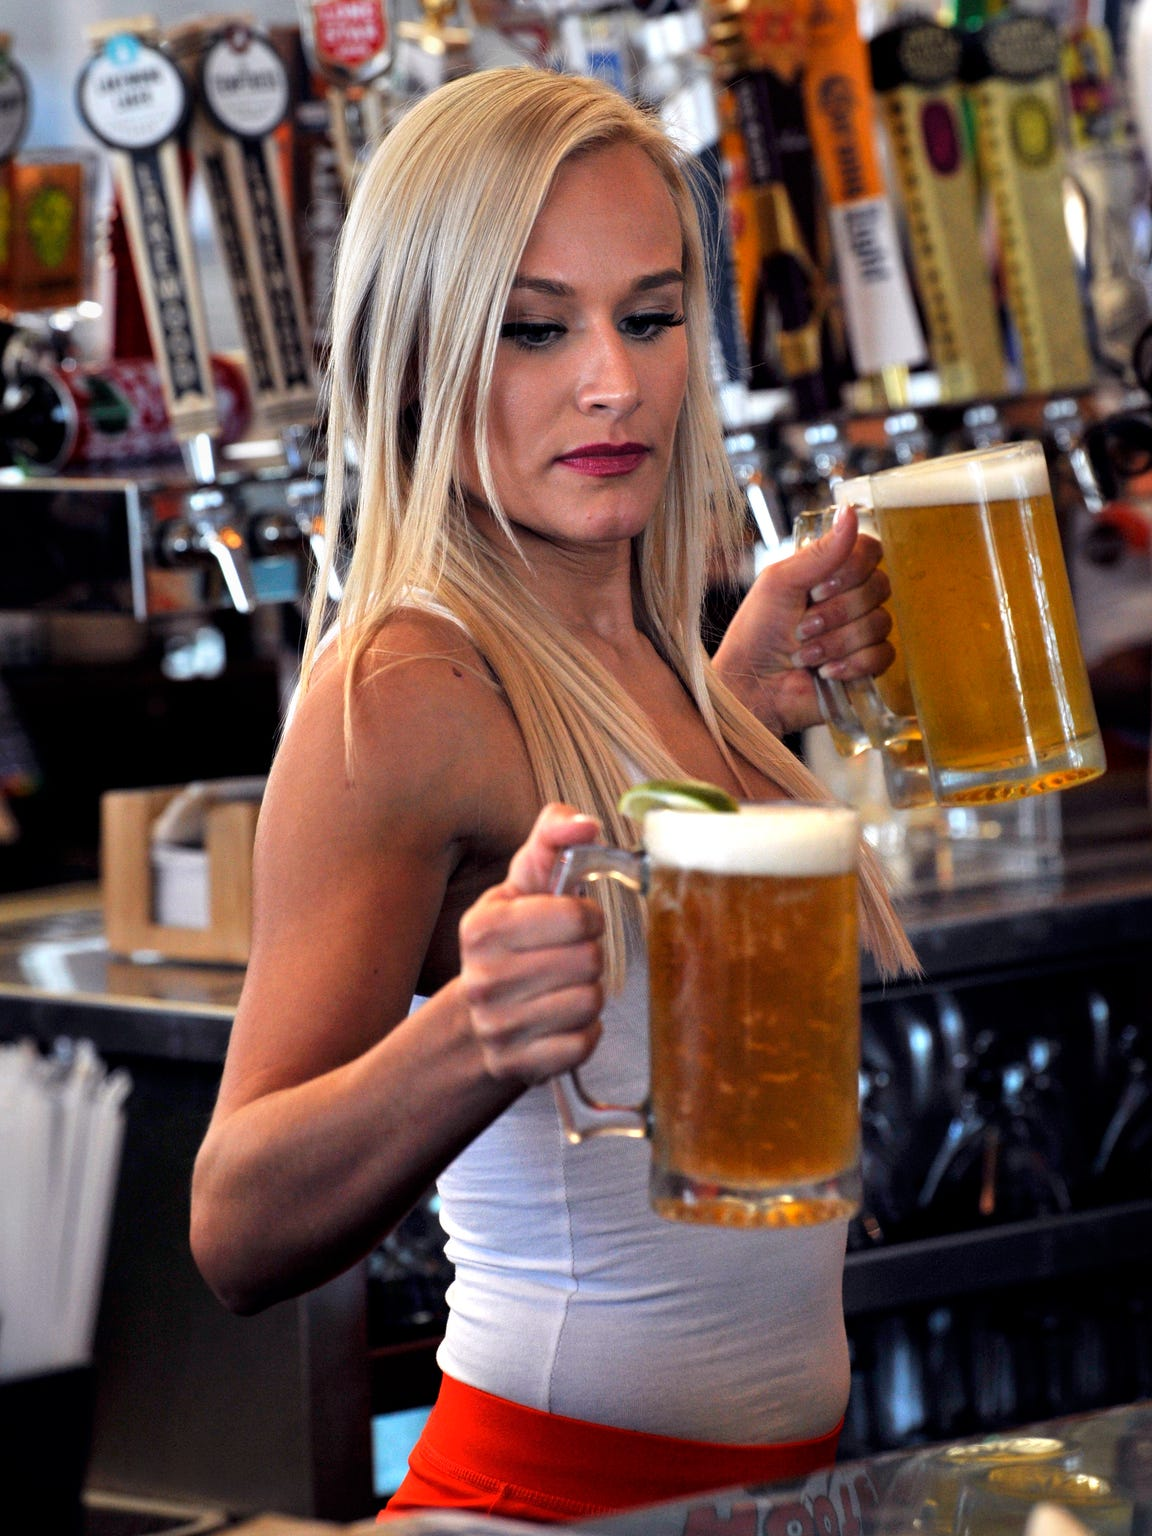 Allison Lyle, a bartender at Hooters, serves beer on the restaurant's opening day Jan. 16. Long thought never to open in Abilene, Hooters is located off Interstate 20 in northeast Abilene.